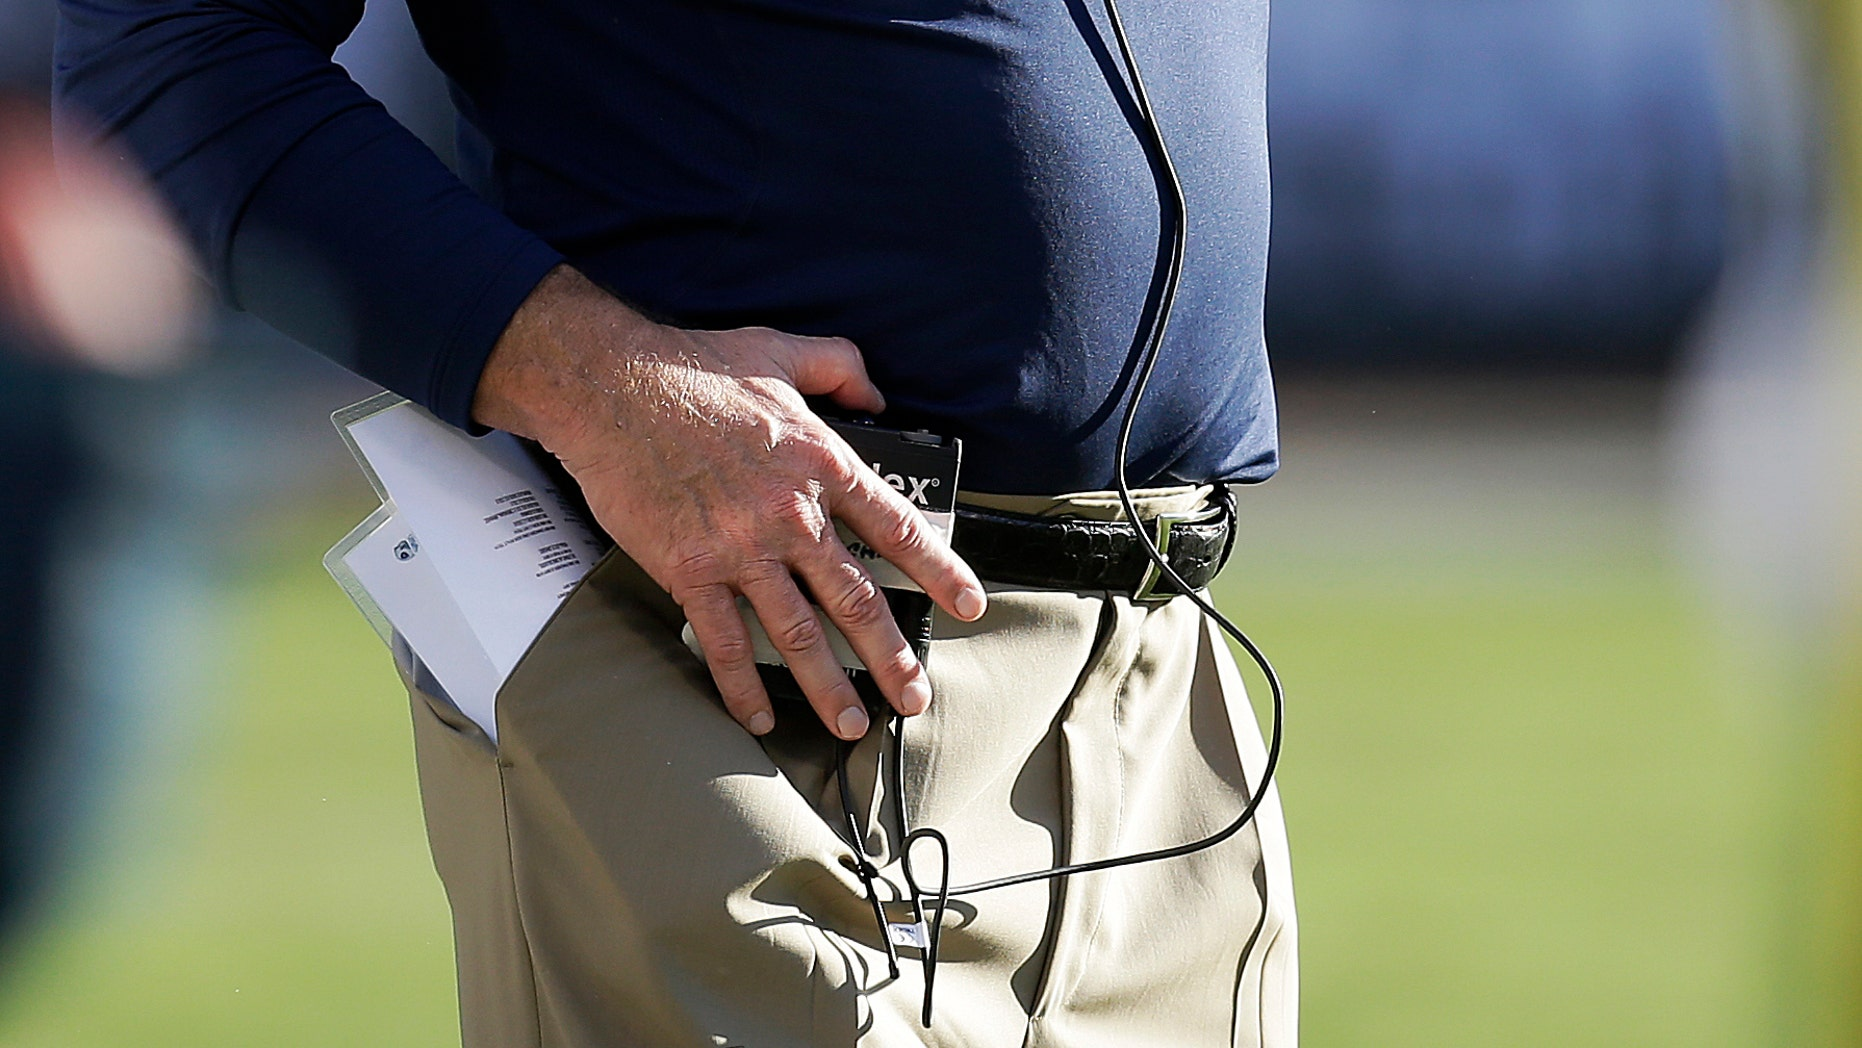 Tennessee Titans head coach Mike Munchak watches from the sideline during the second quarter of an NFL football game against the Oakland Raiders in Oakland, Calif., Sunday, Nov. 24, 2013. (AP Photo/Ben Margot)